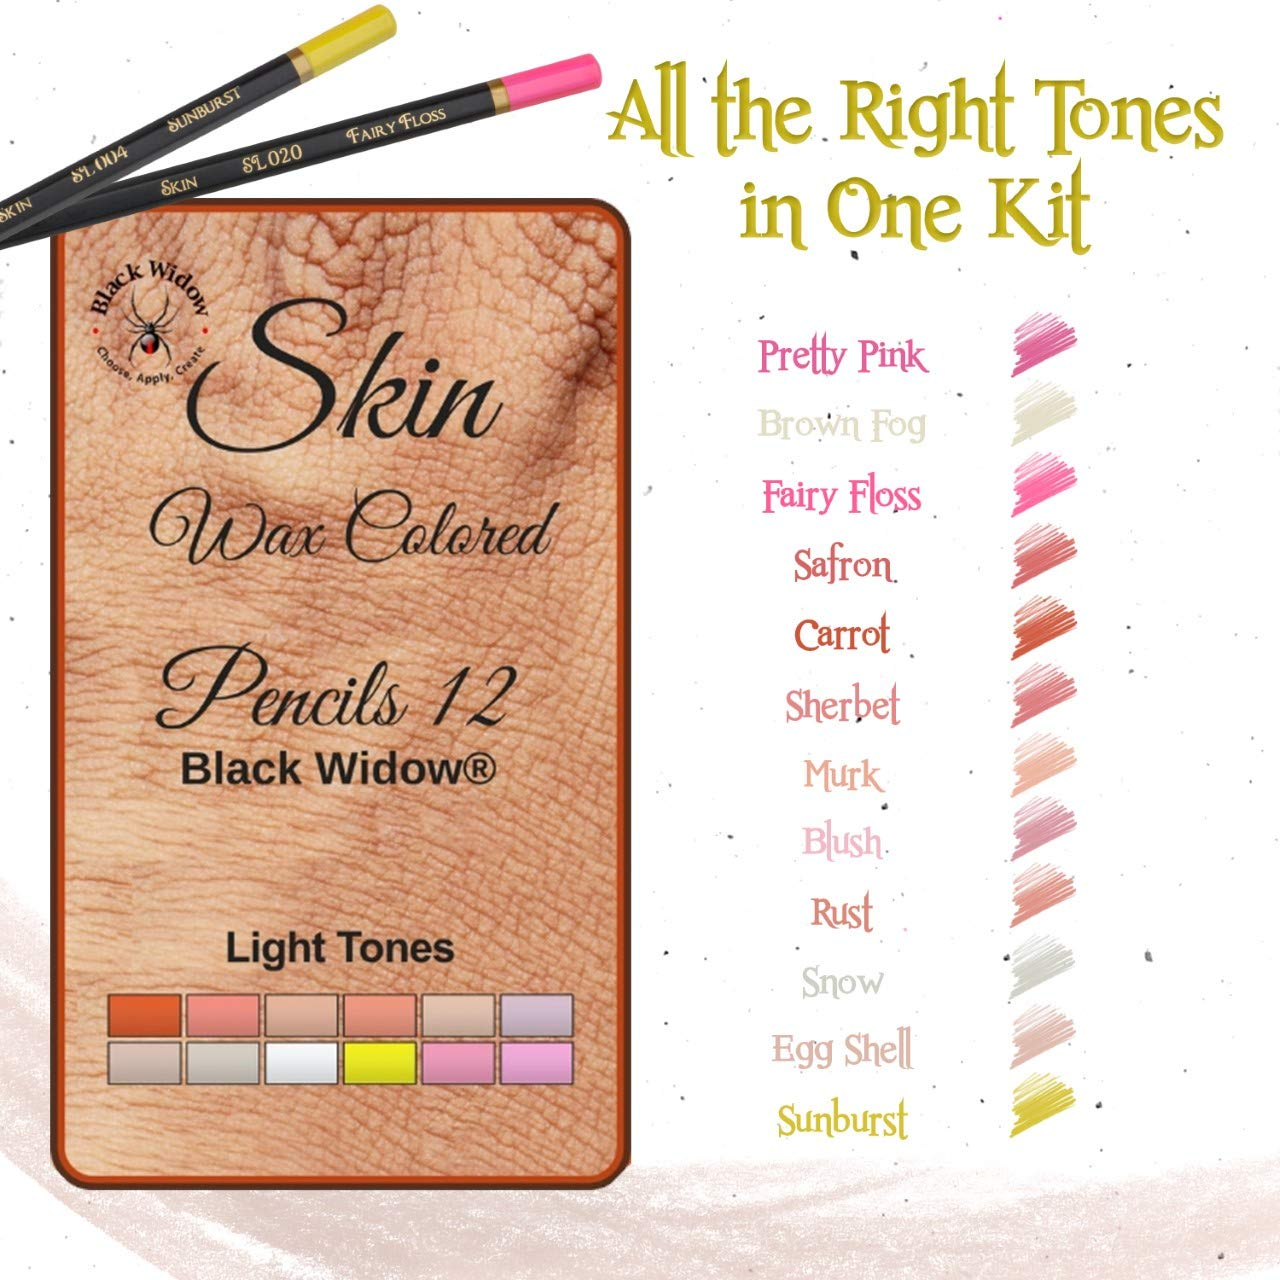 Light Skin Tone Color Pencils for Portrait Set - Colored Pencils for Adults and Skintone Artist Pencils by Medihealth 1 (Image #6)